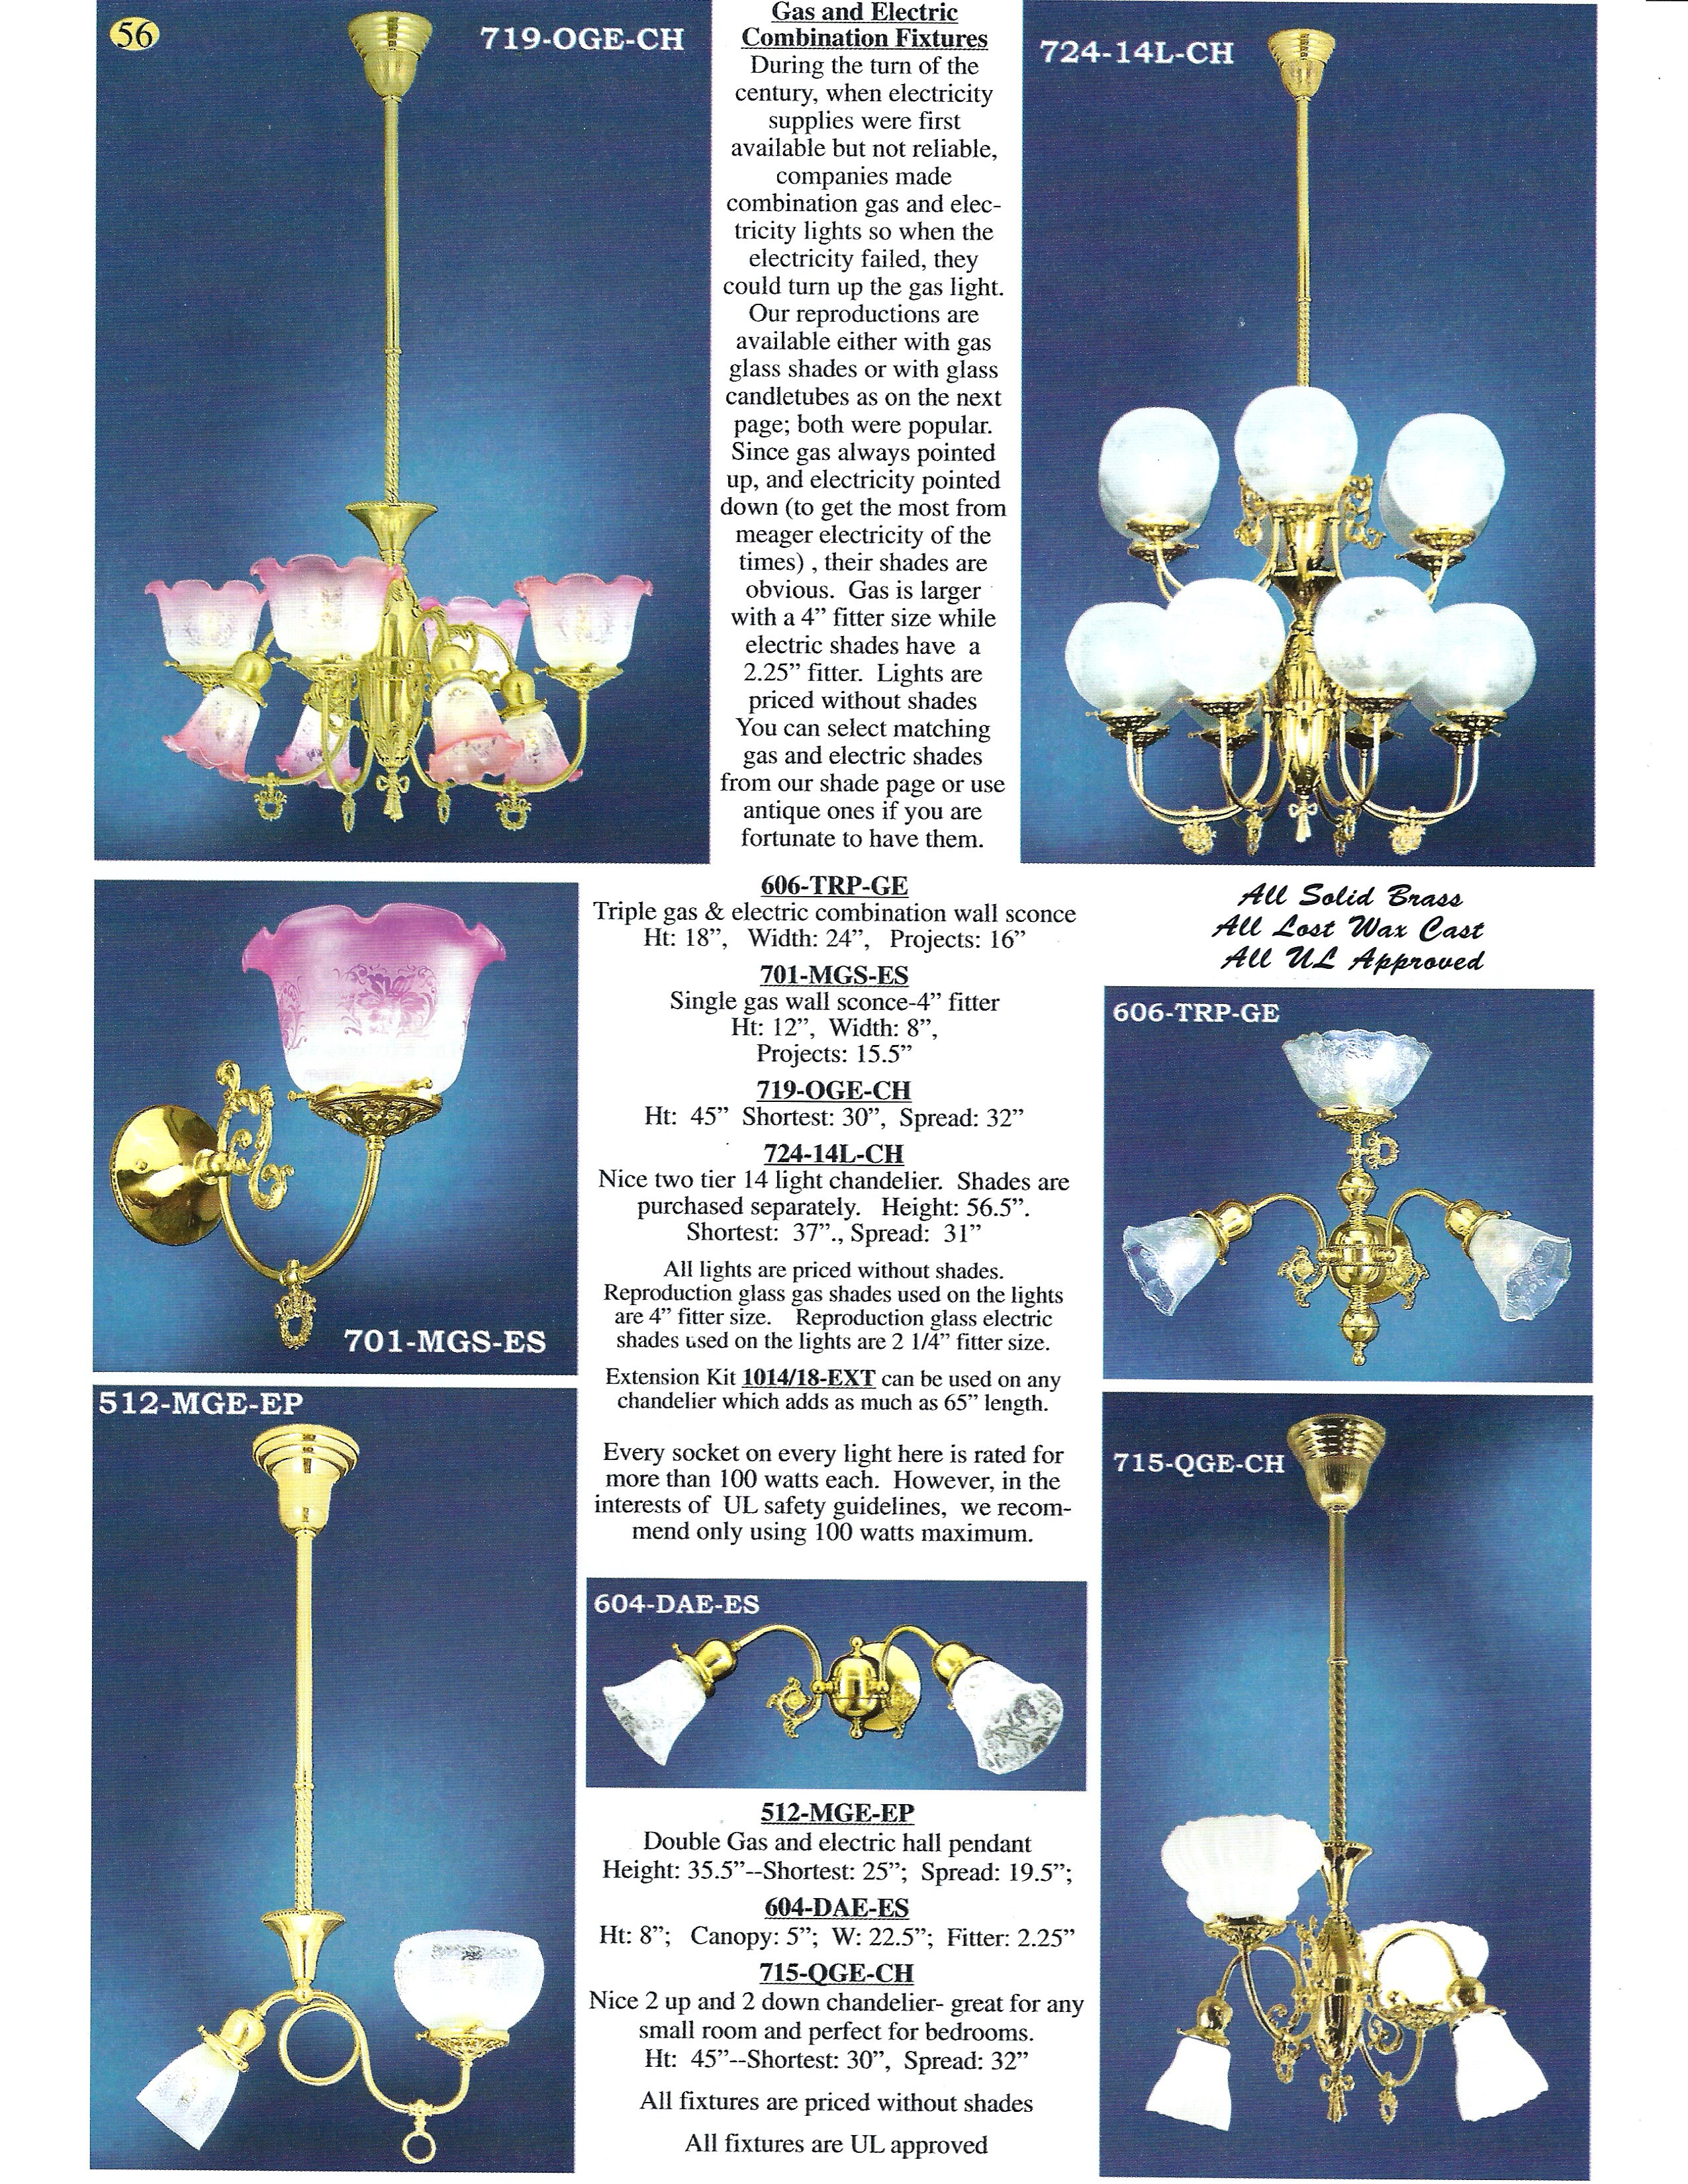 Catalog page 80